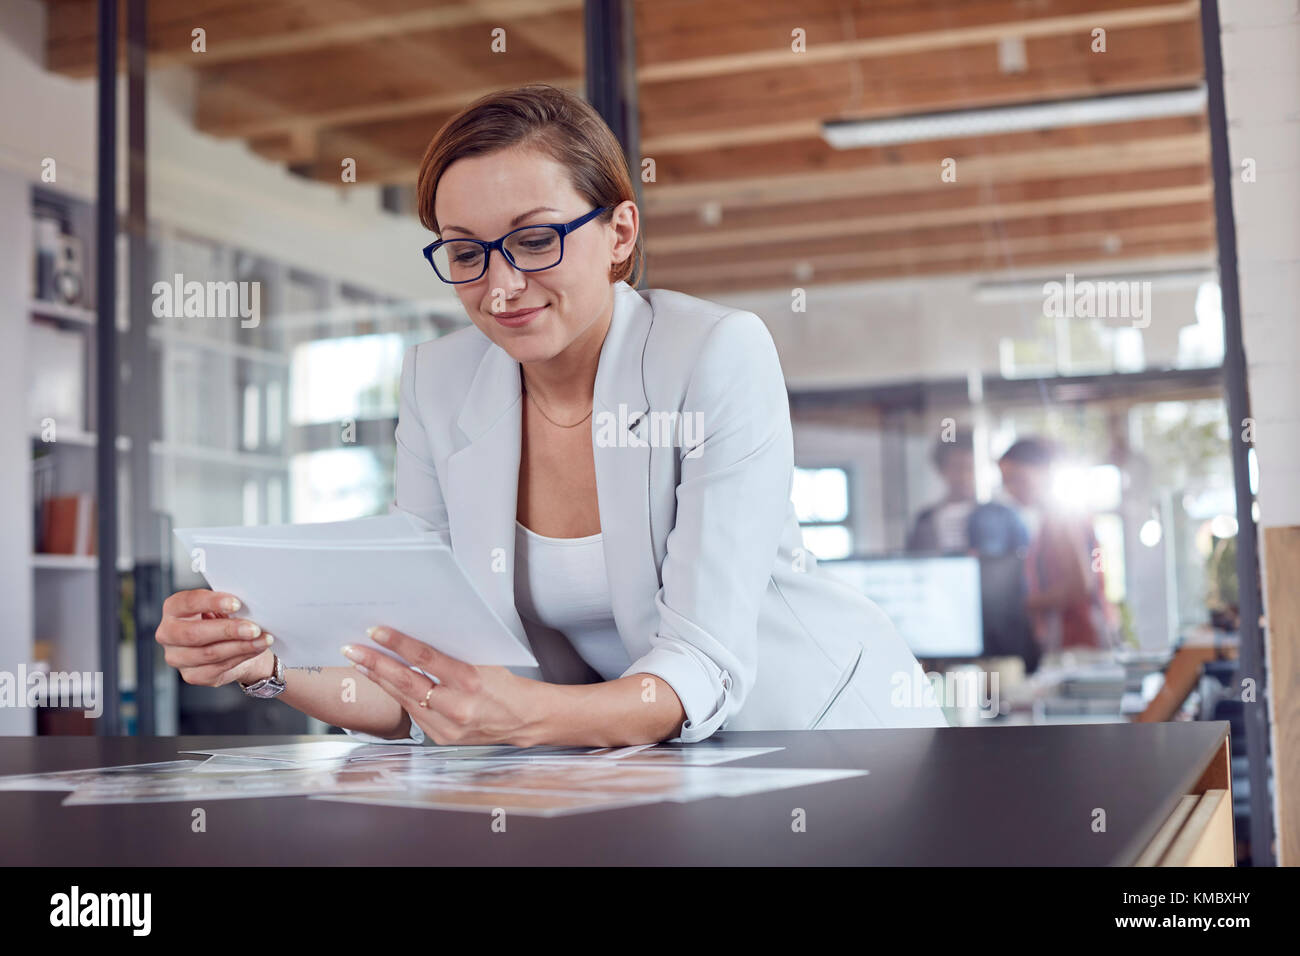 Female design professional reviewing photograph proofs in office - Stock Image